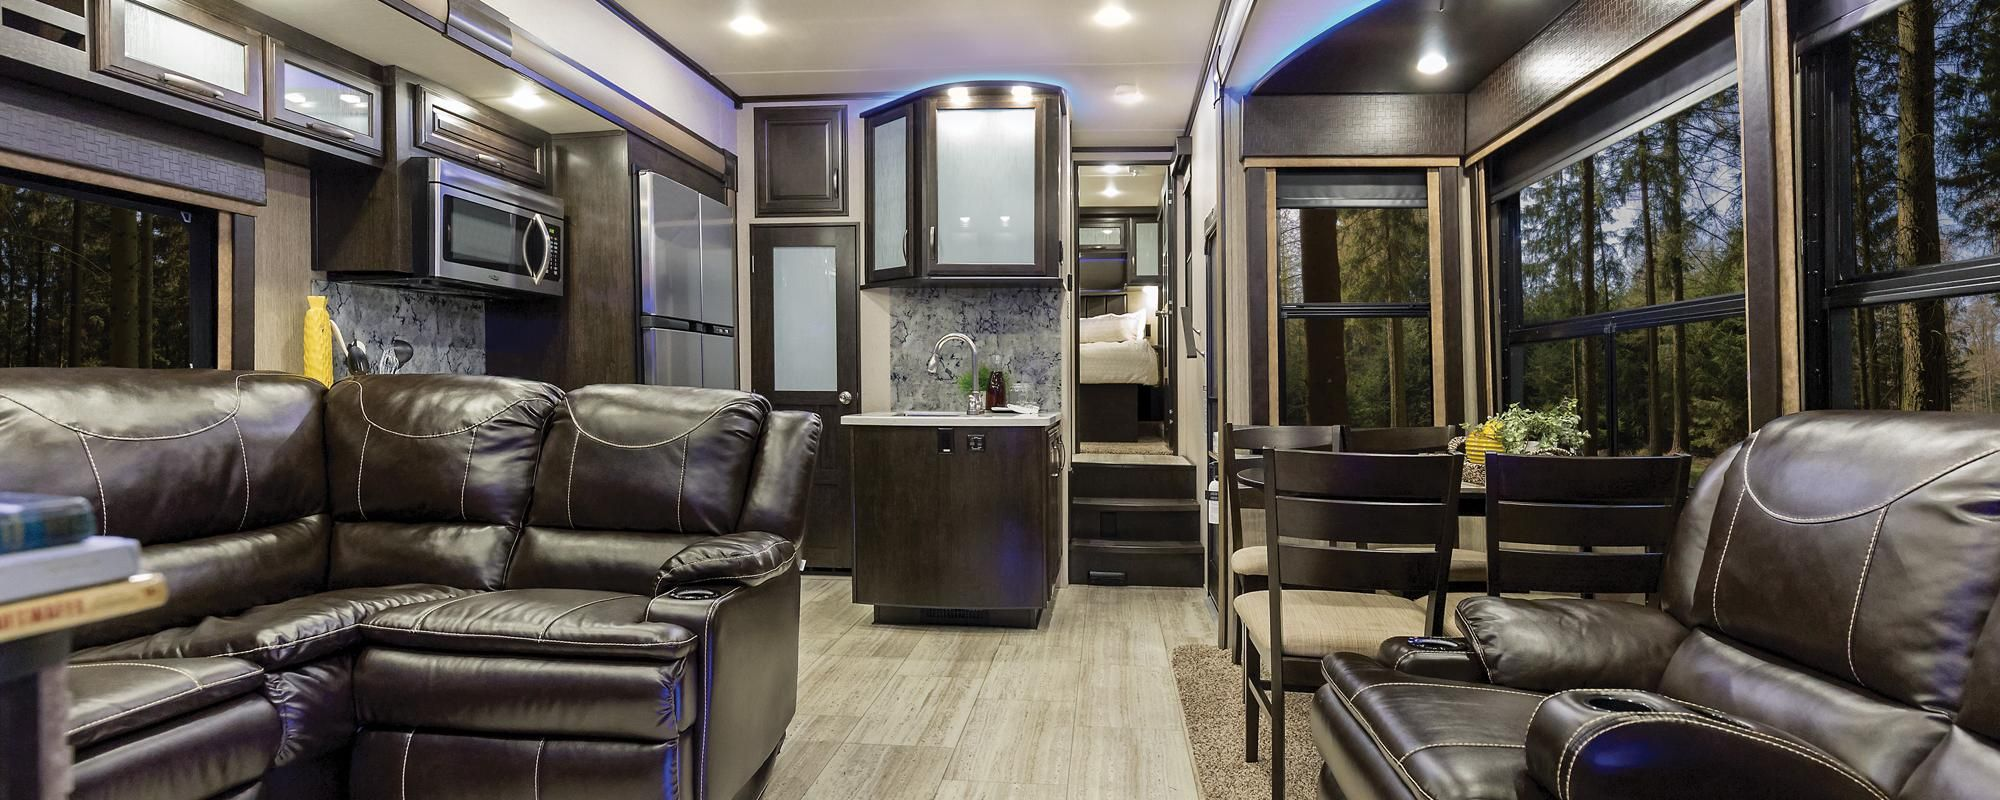 Luxury toy haulers wow blog - Front living room 5th wheel toy hauler ...